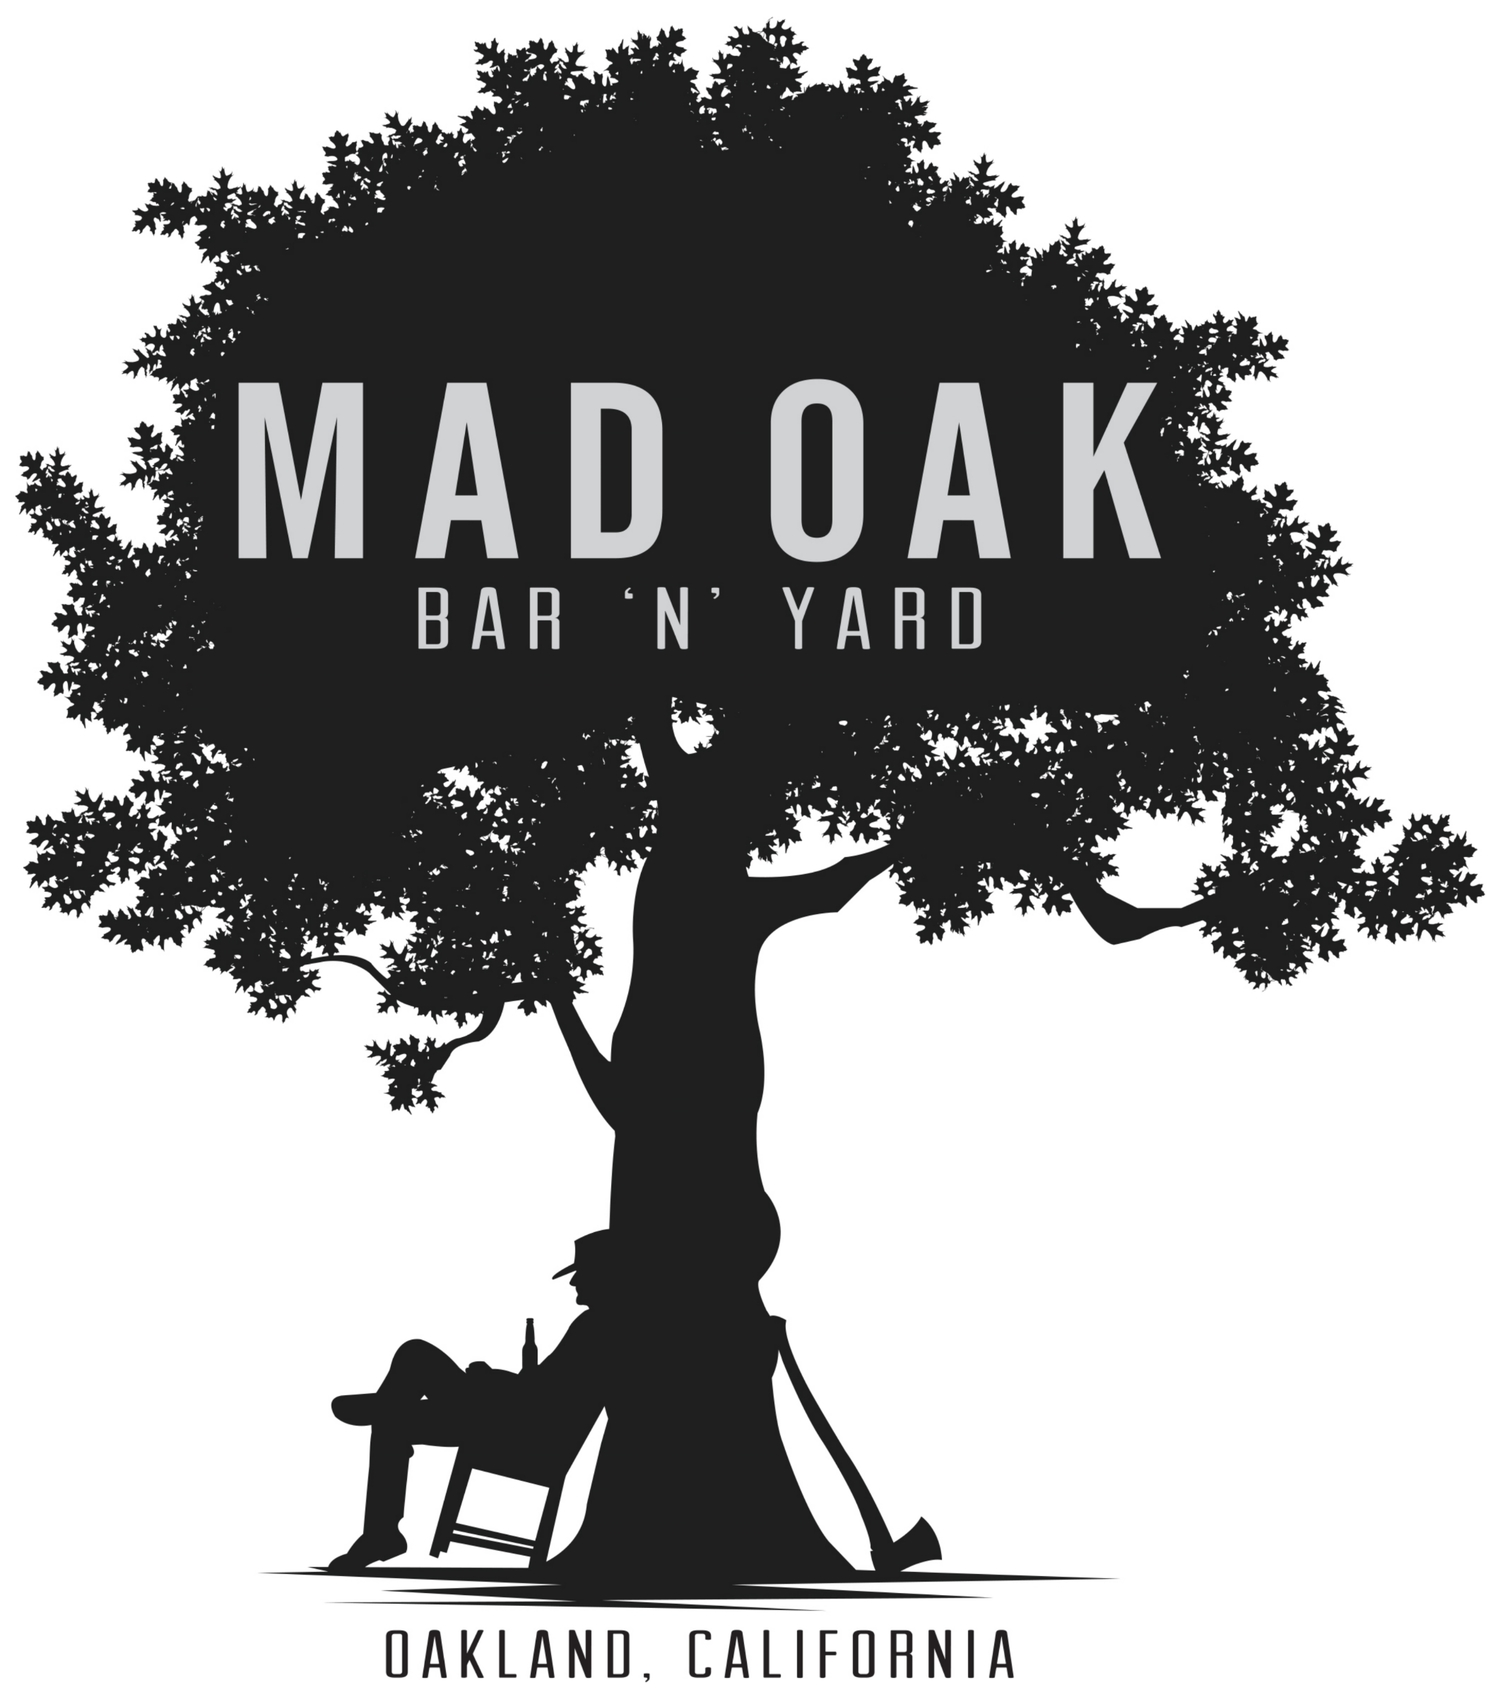 Mad Oak Bar 'n' Yard